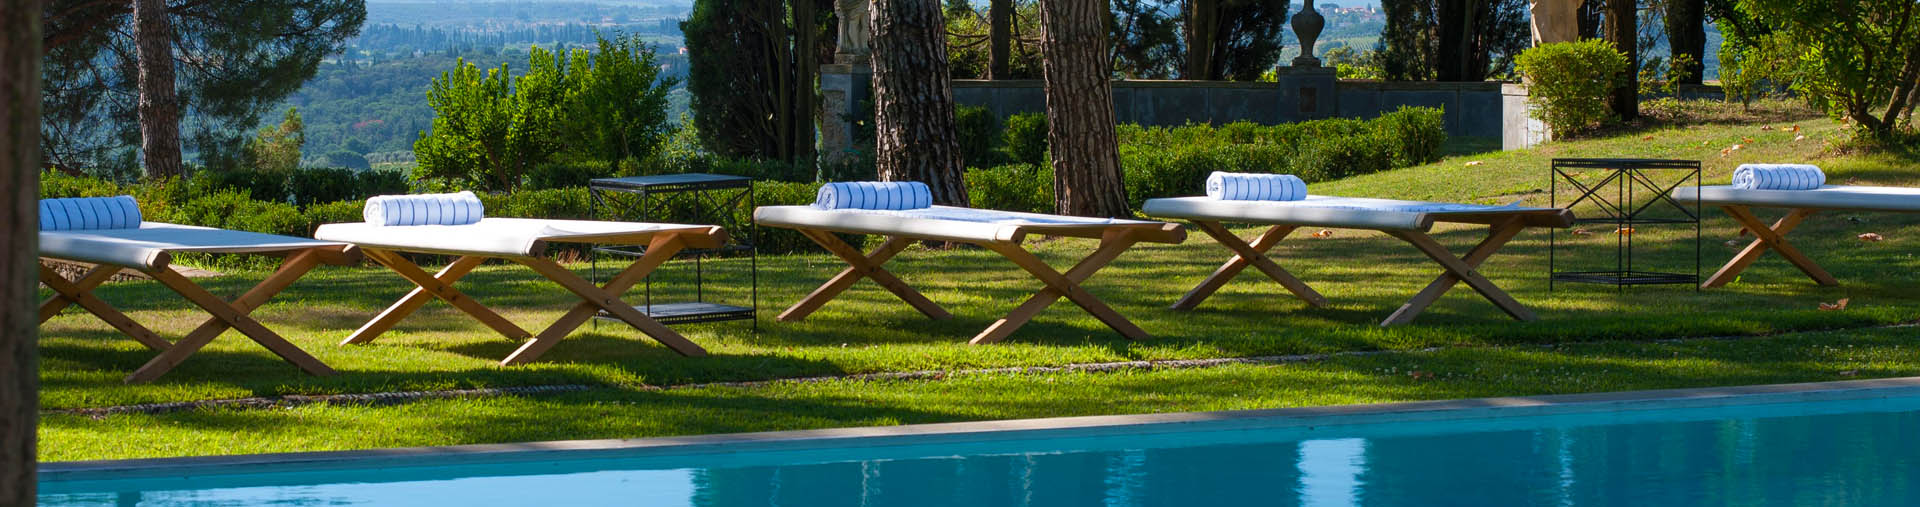 Villa Taverna, Tuscany|At the turn of the rolling hills of Chianti, in the land of the finest wines, a villa overlooking the charateristc vineyards, olive groves and small villages.